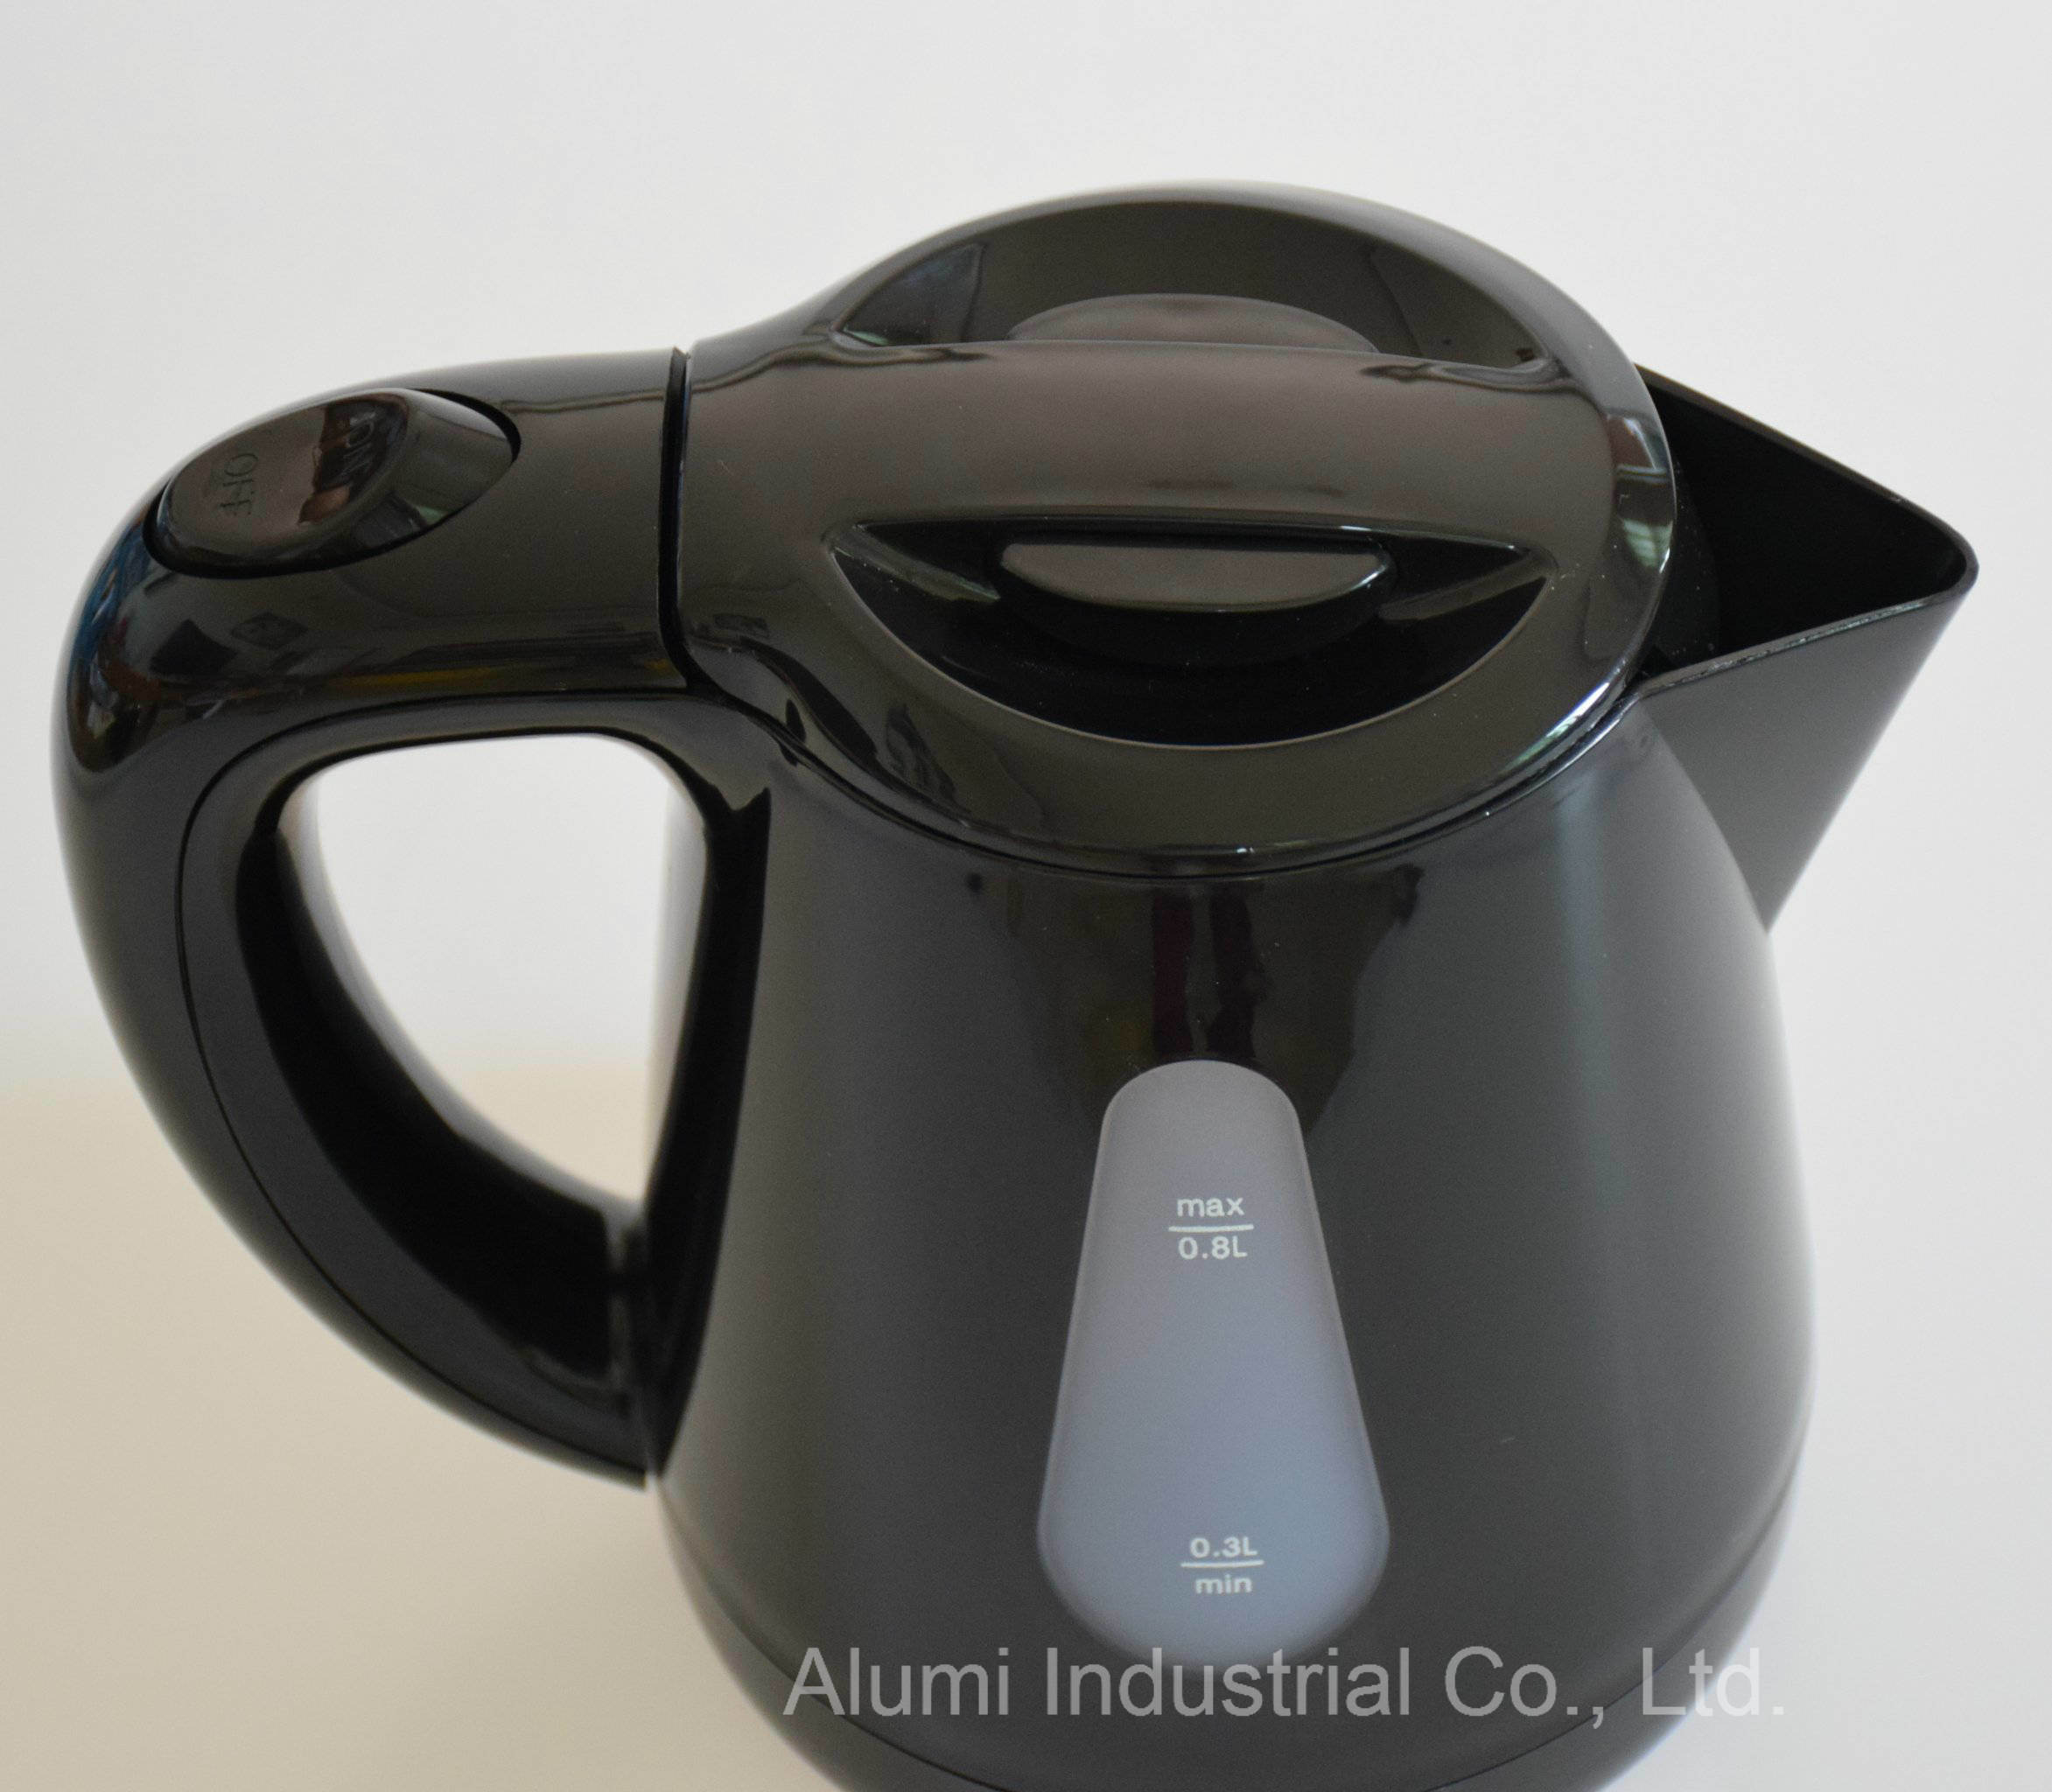 Hotel 0 8l Plastic Cordless Electric Kettle Creamy White Colour